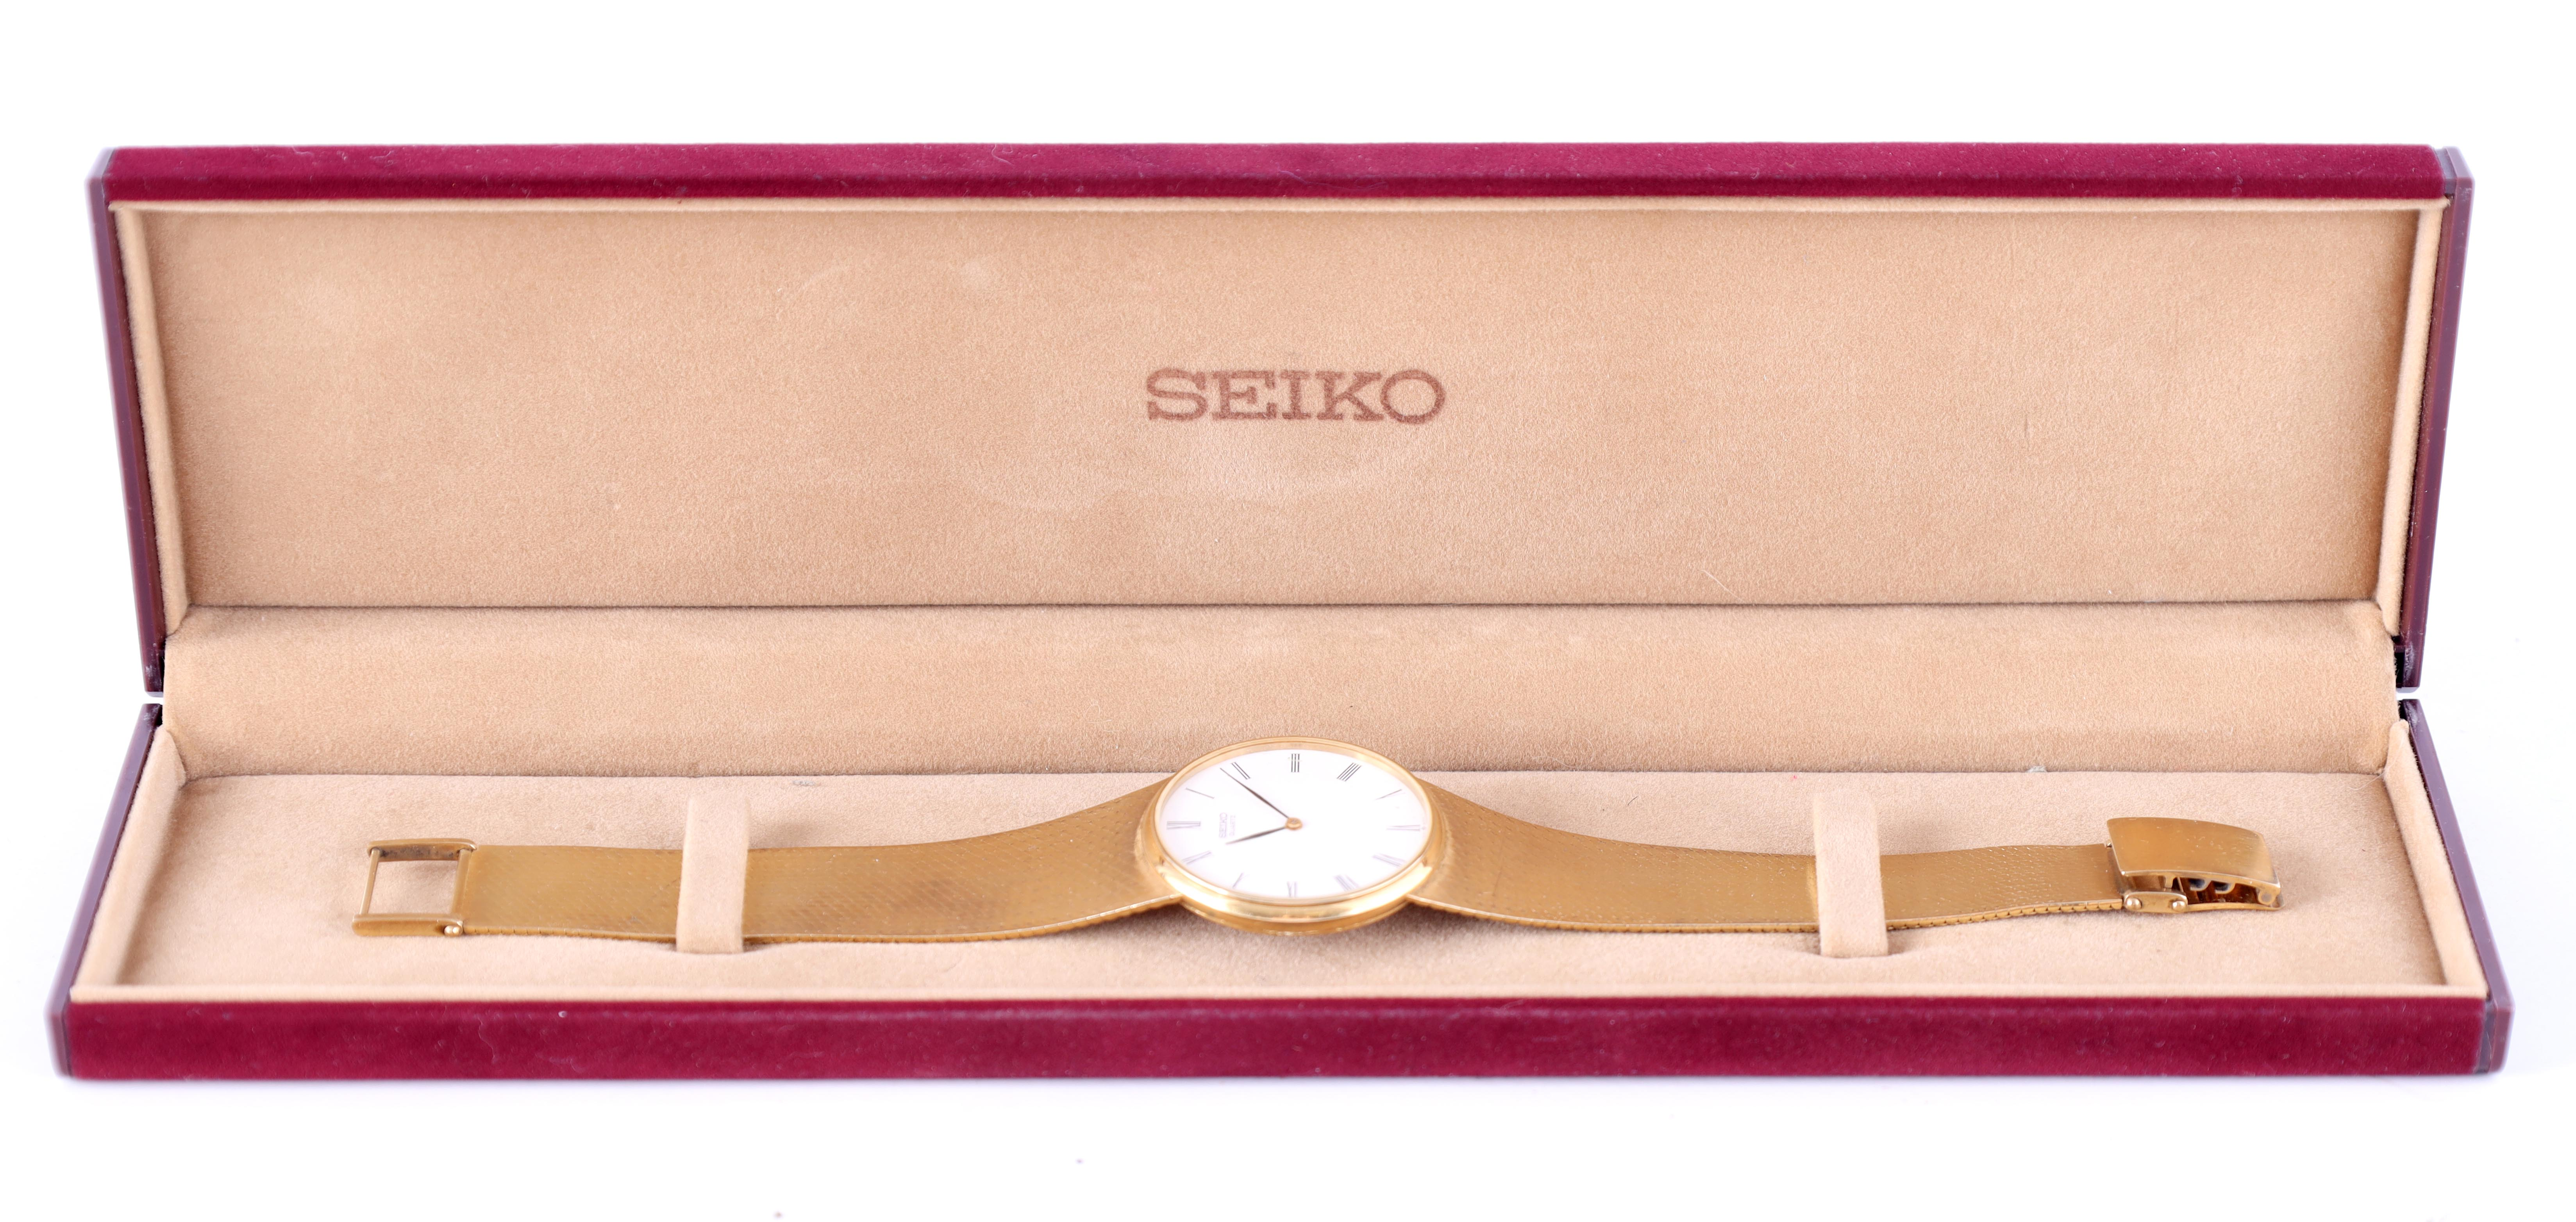 A GENTLEMAN'S 9CT GOLD SEIKO WRISTWATCH on original 9ct gold bracelet The white enamel dial with - Image 3 of 8